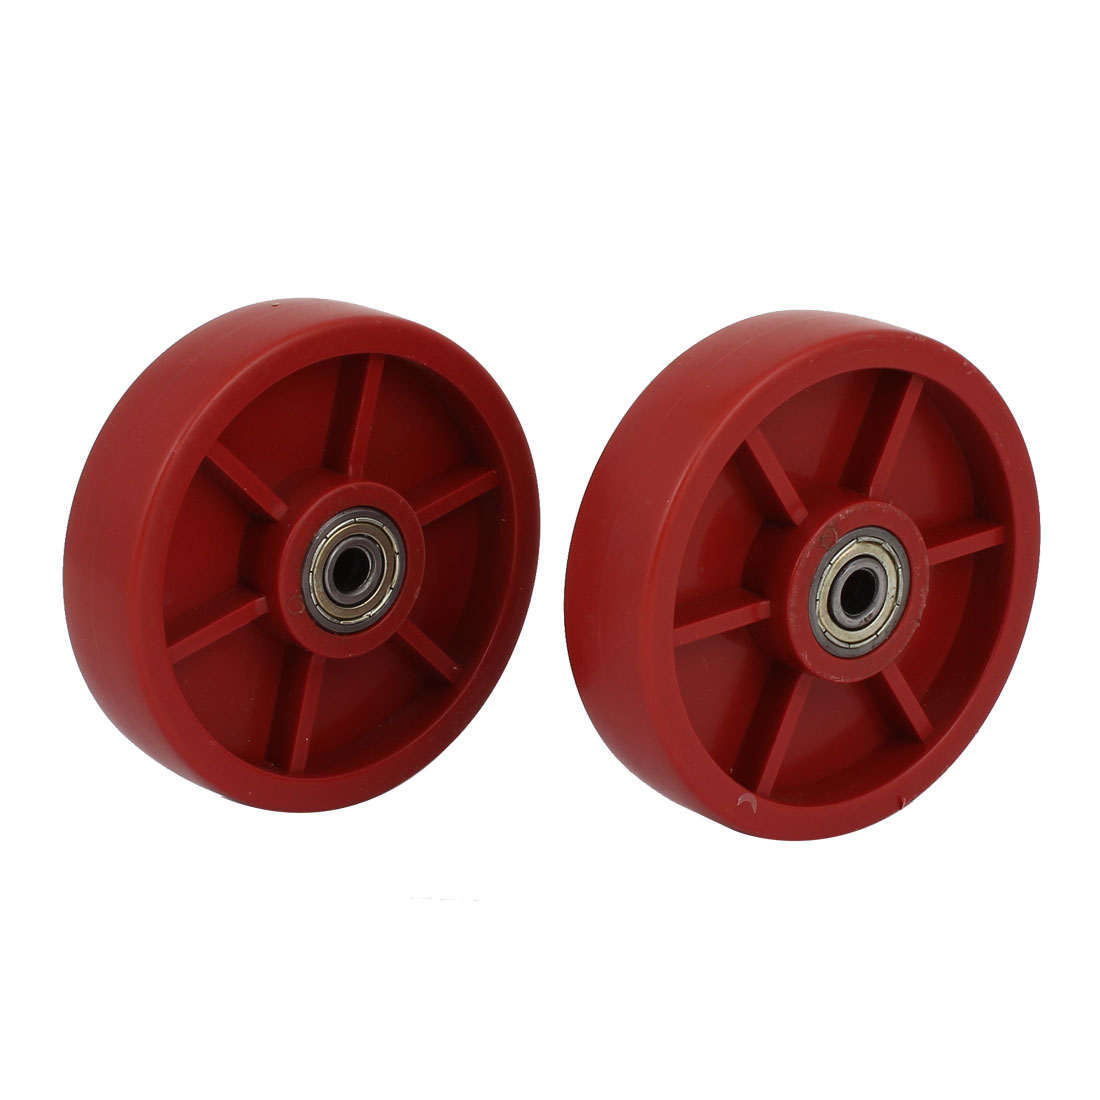 "2pcs Red Hard Plastic Round Bearing Wheel Caster 4.5"" Dia for Traveling Carts"